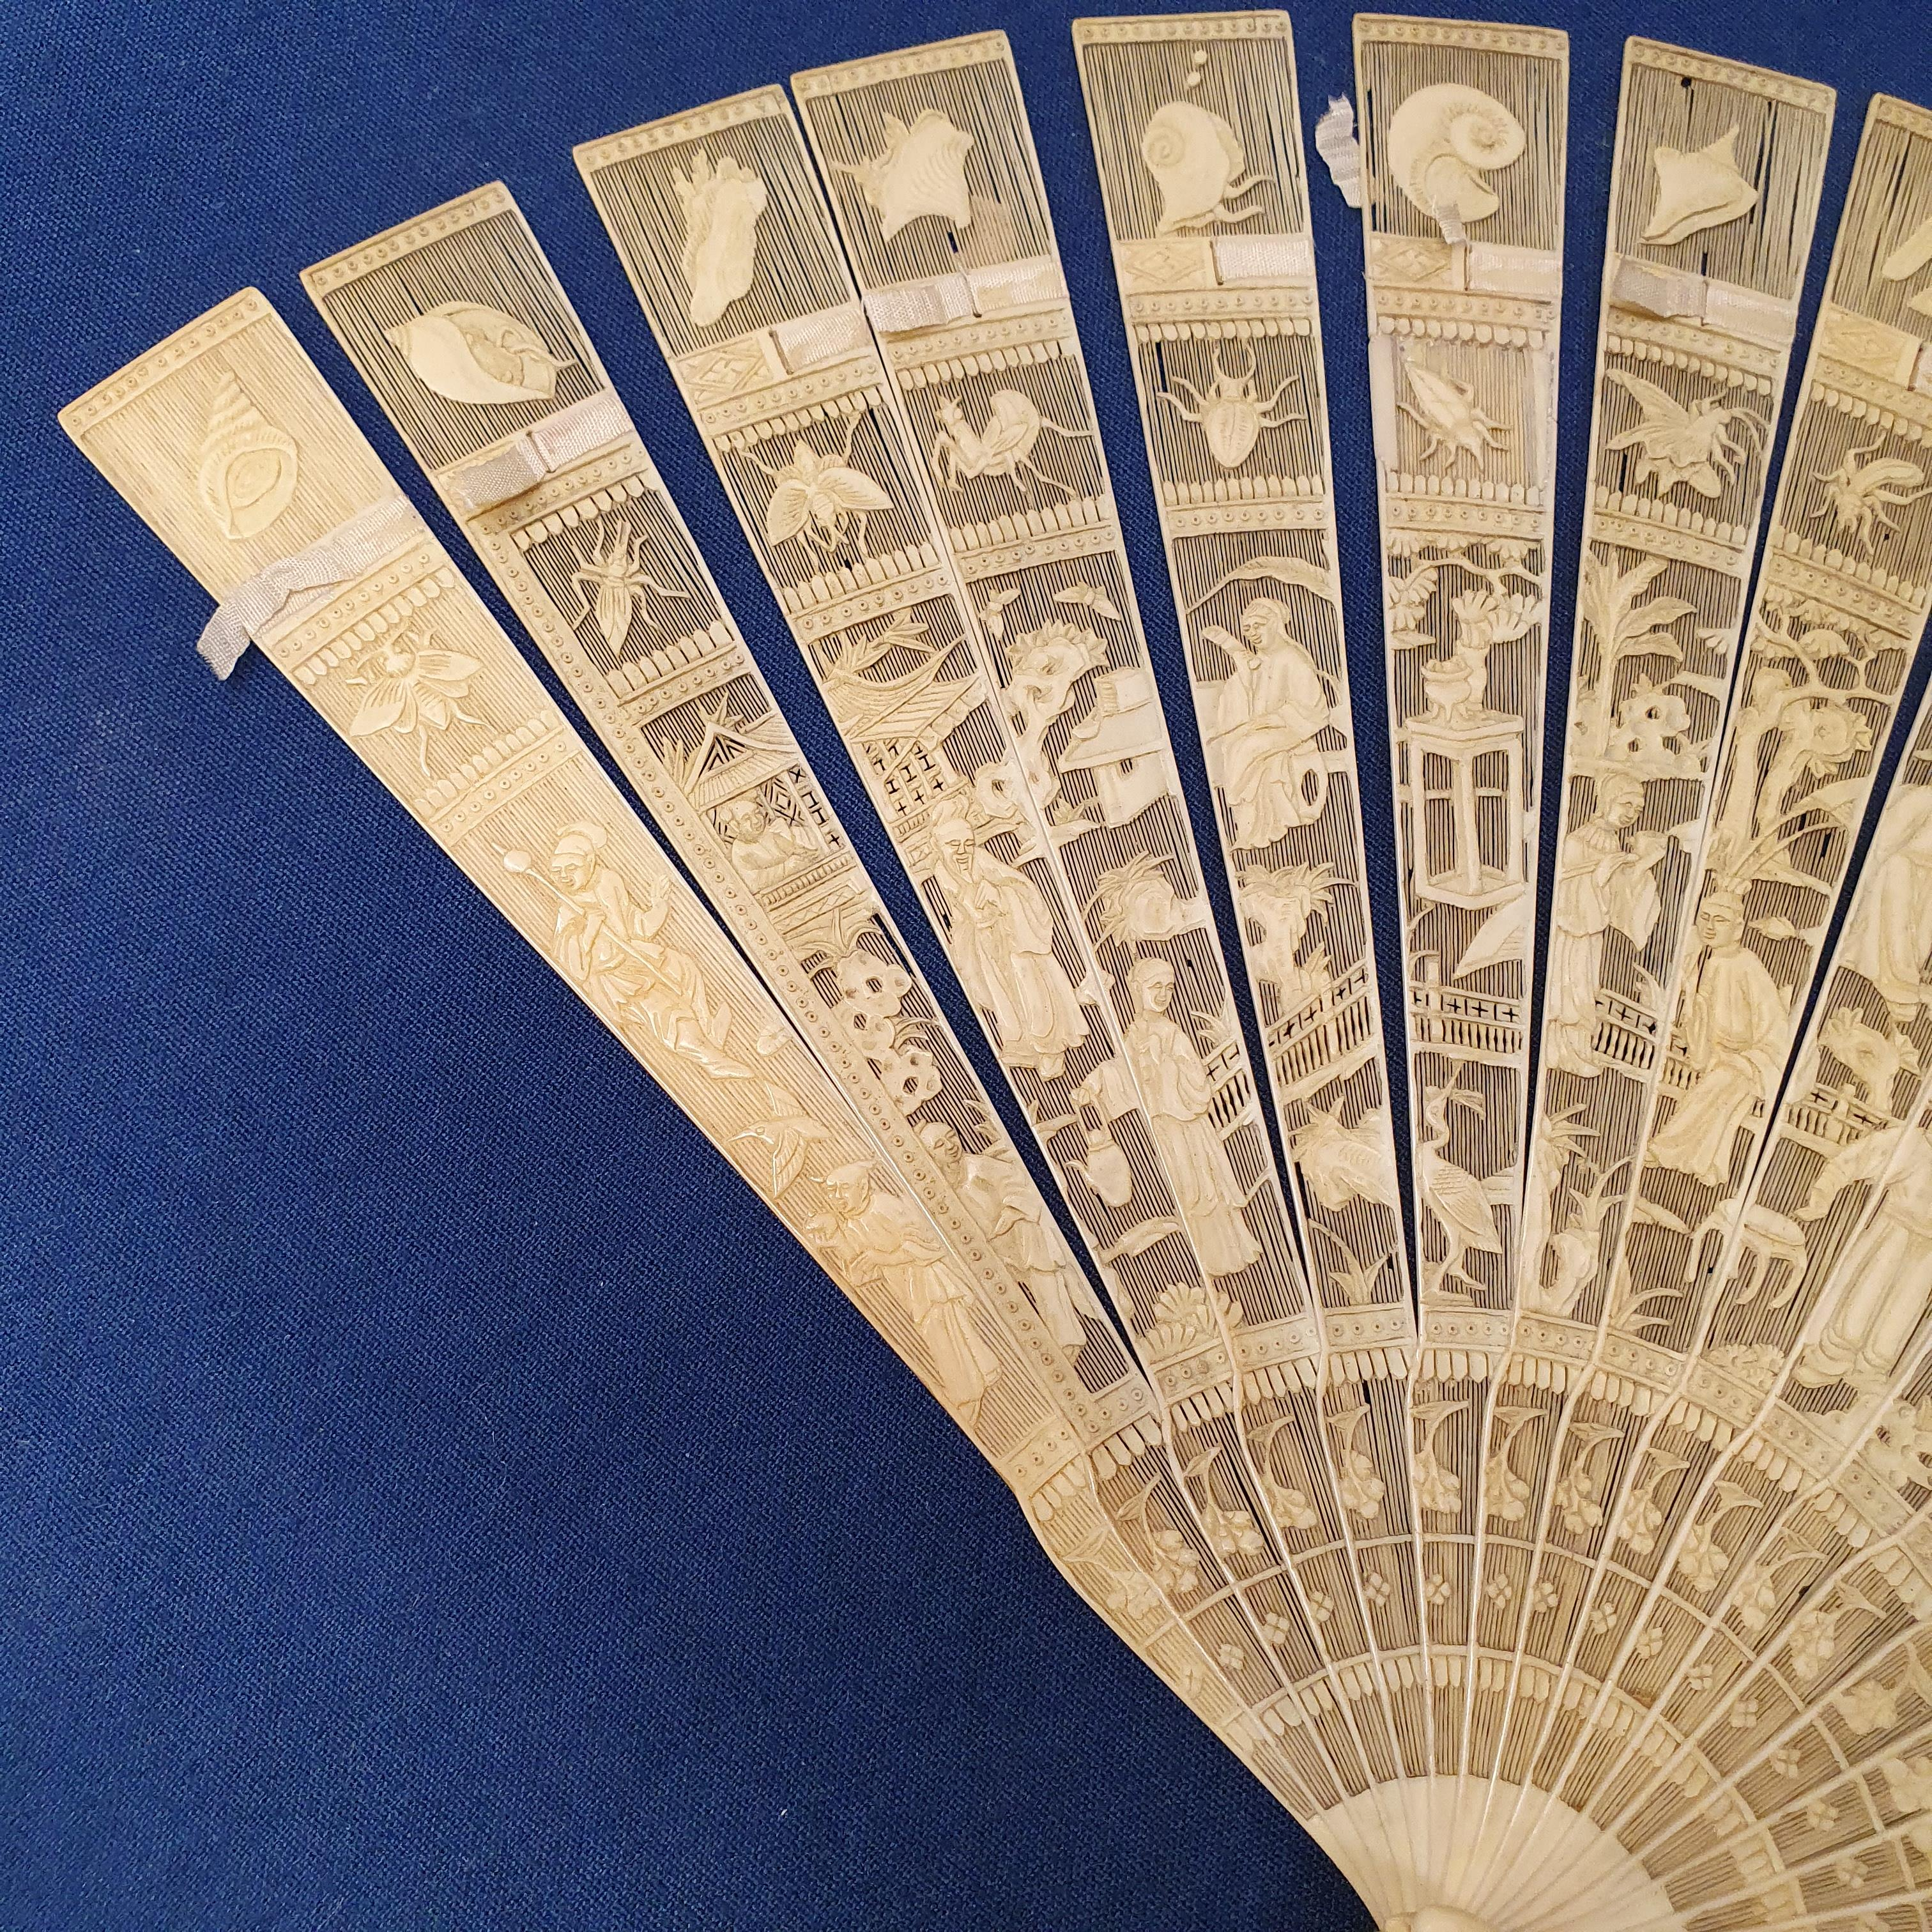 A Chinese ivory brisee fan, two others, and a similar fan with silk embroidered decoration, in a - Image 7 of 47